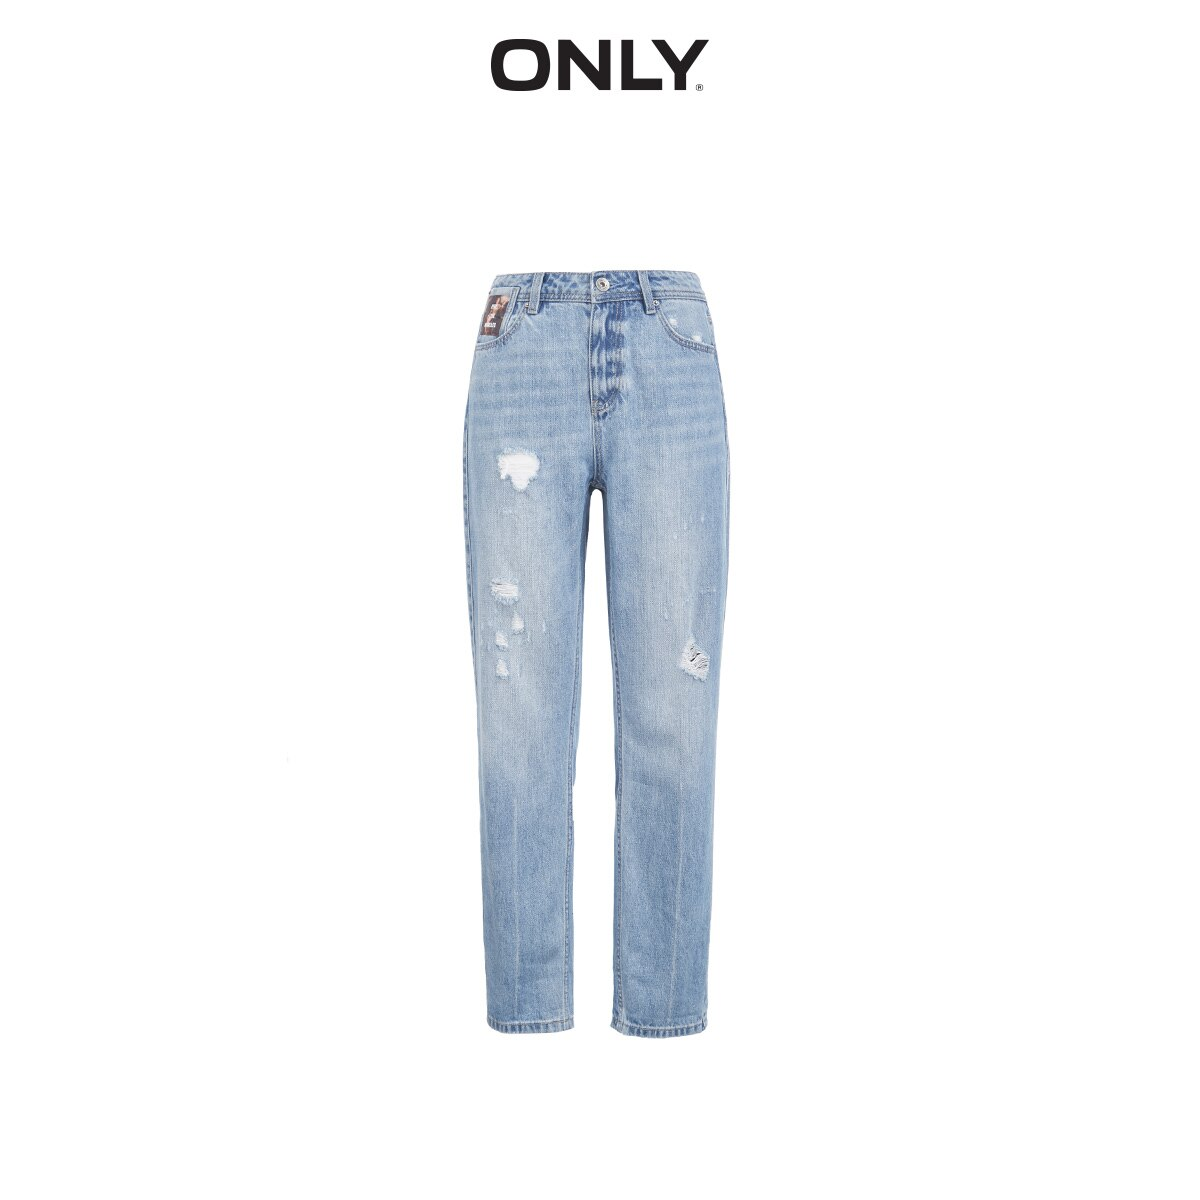 ONLY Women's Loose Straight Fit Ripped Low-rise Crop Jeans |119449517 4